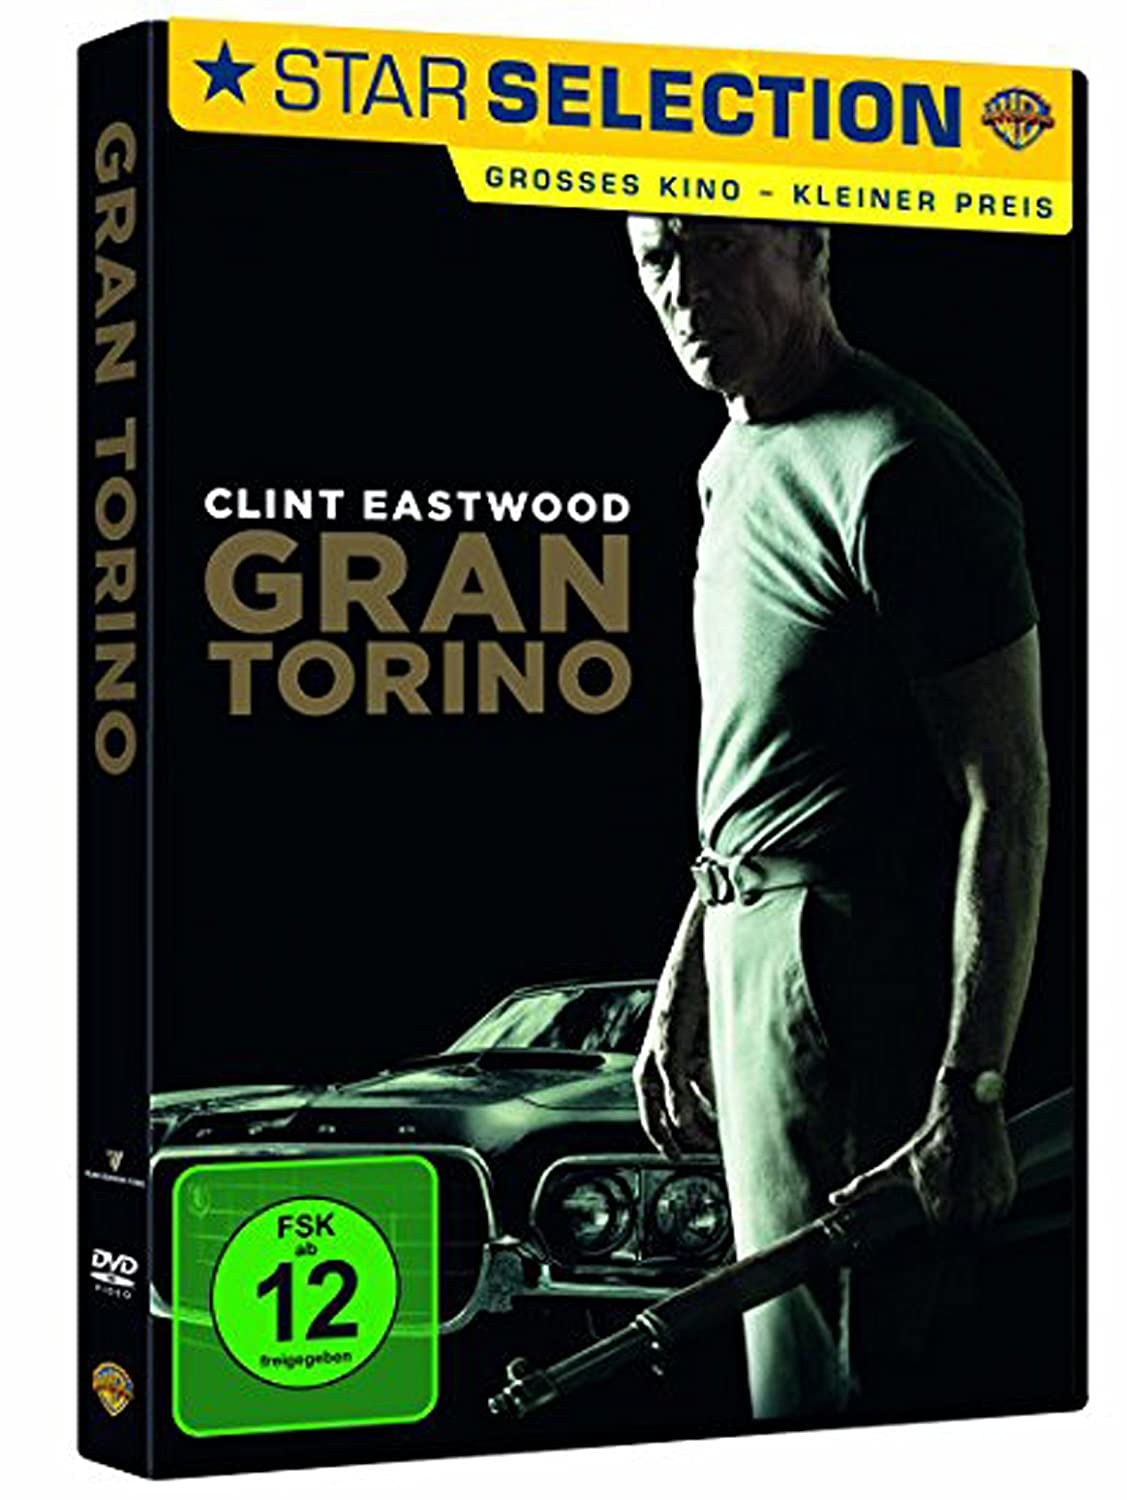 Gran Torino, 1 DVD: Amazon.de: Clint Eastwood: DVD & Blu-ray